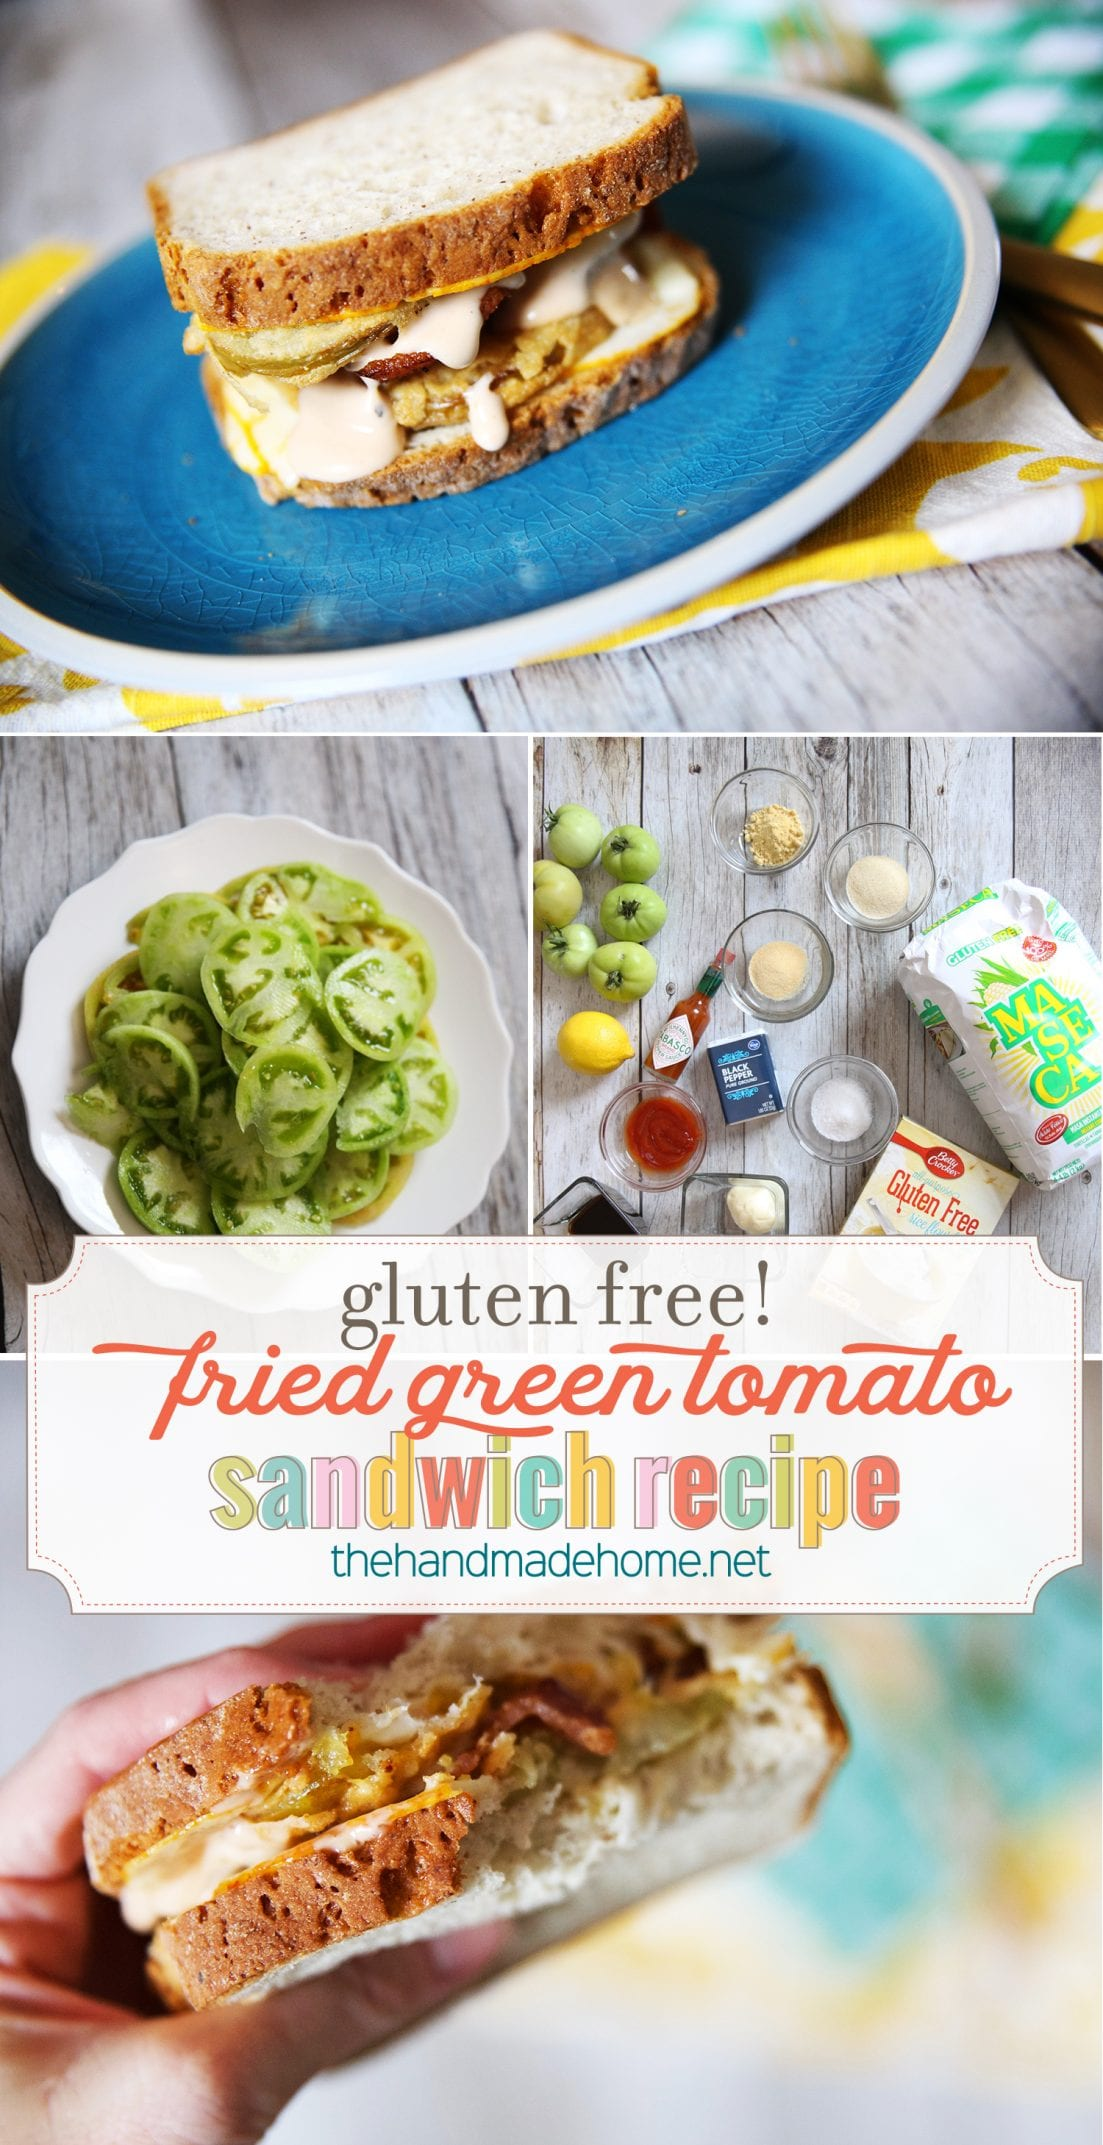 Gluten free sandwich {fried green tomato with comeback sauce}